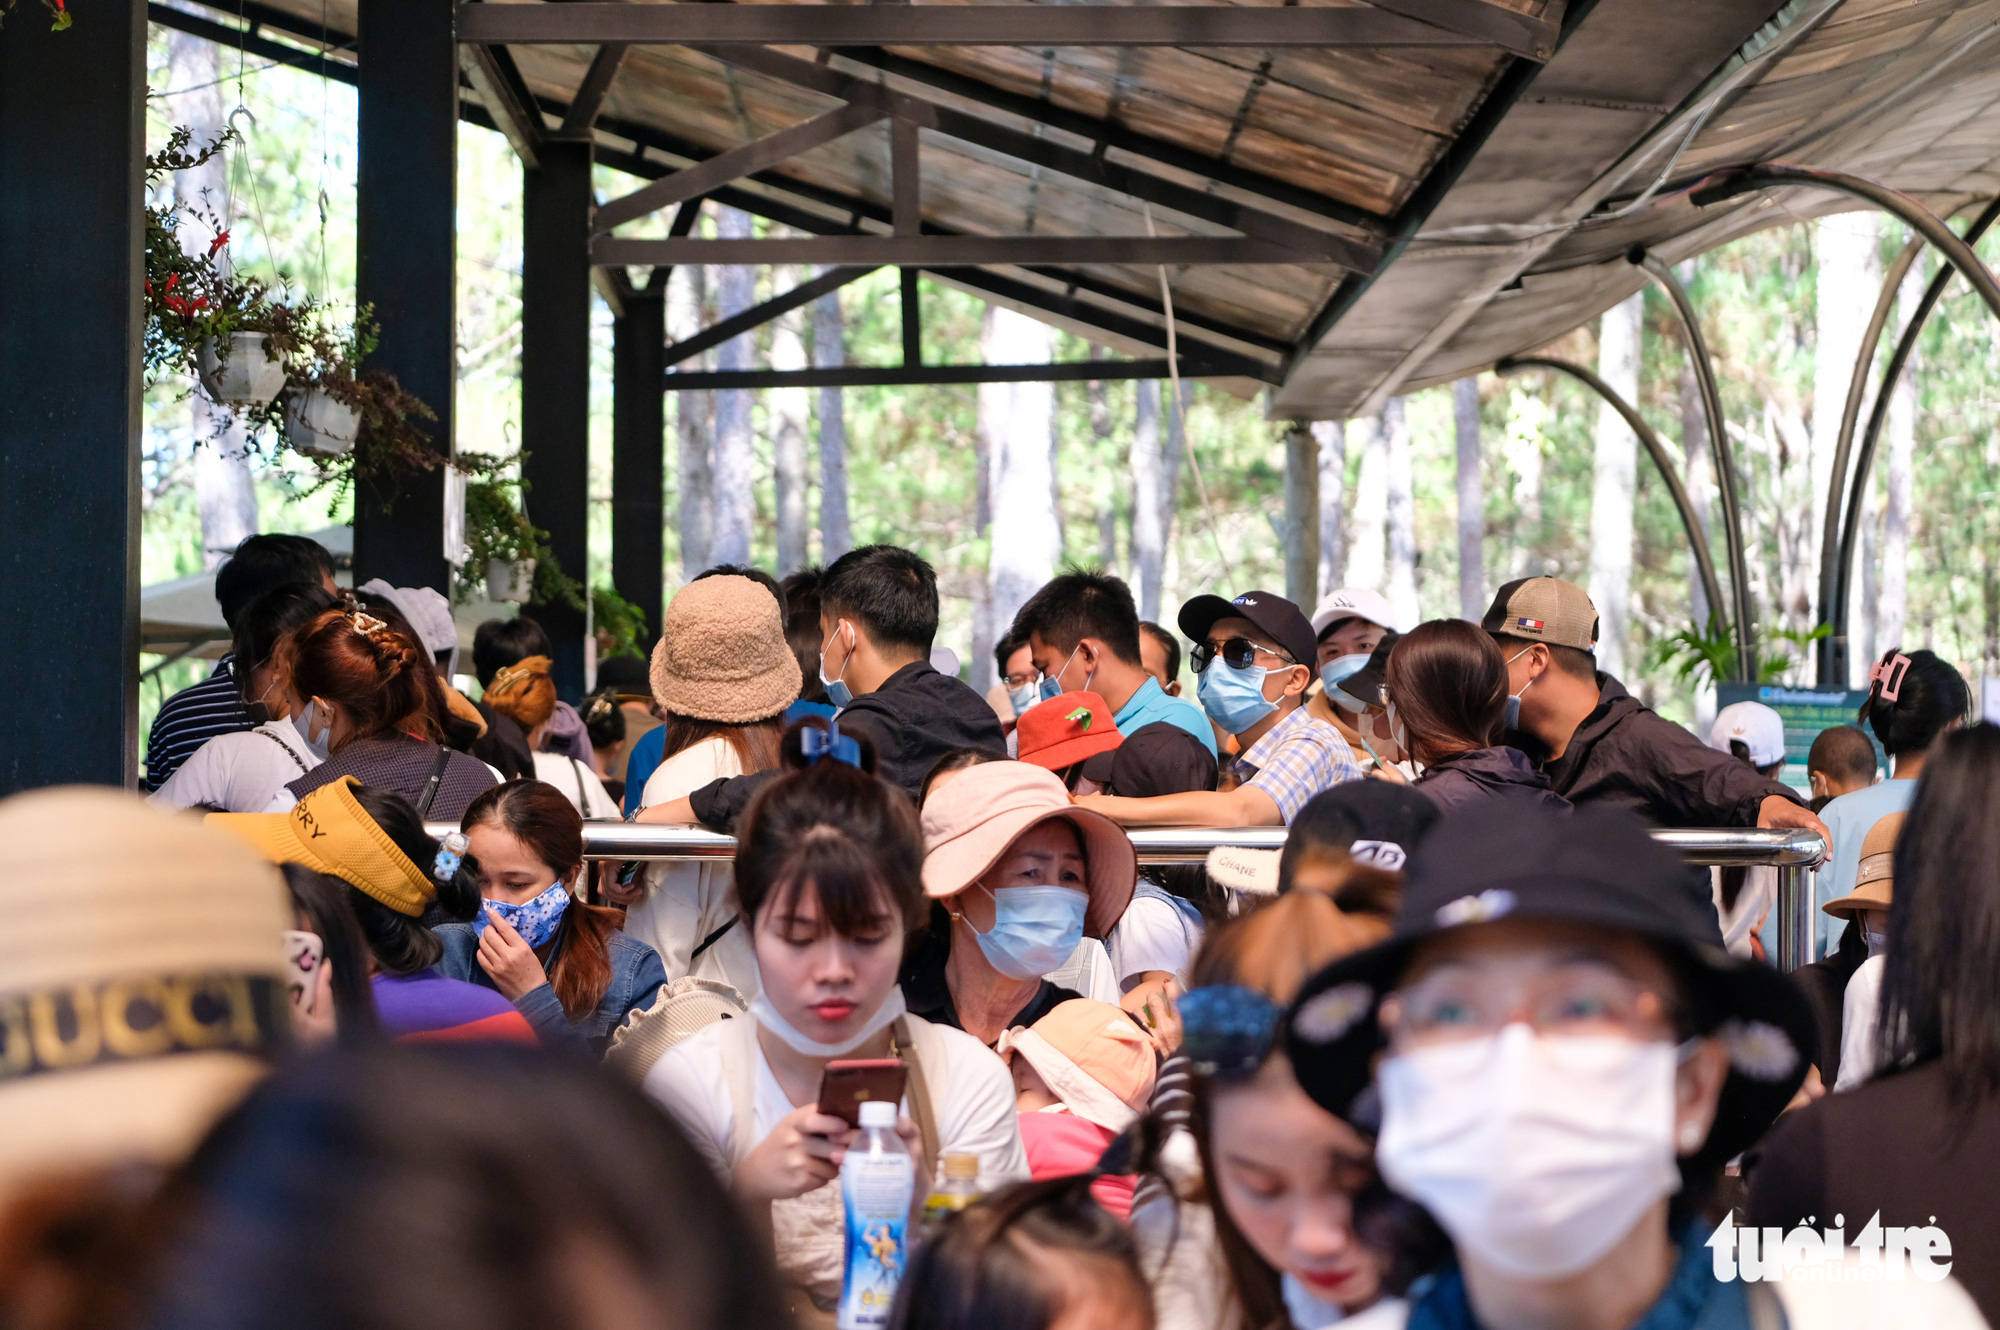 People wait to buy tickets at the entrance of Datanla Waterfall in Da Lat City, Lam Dong Province, Vietnam, May 2, 2021. Photo: Duc Tho / Tuoi Tre